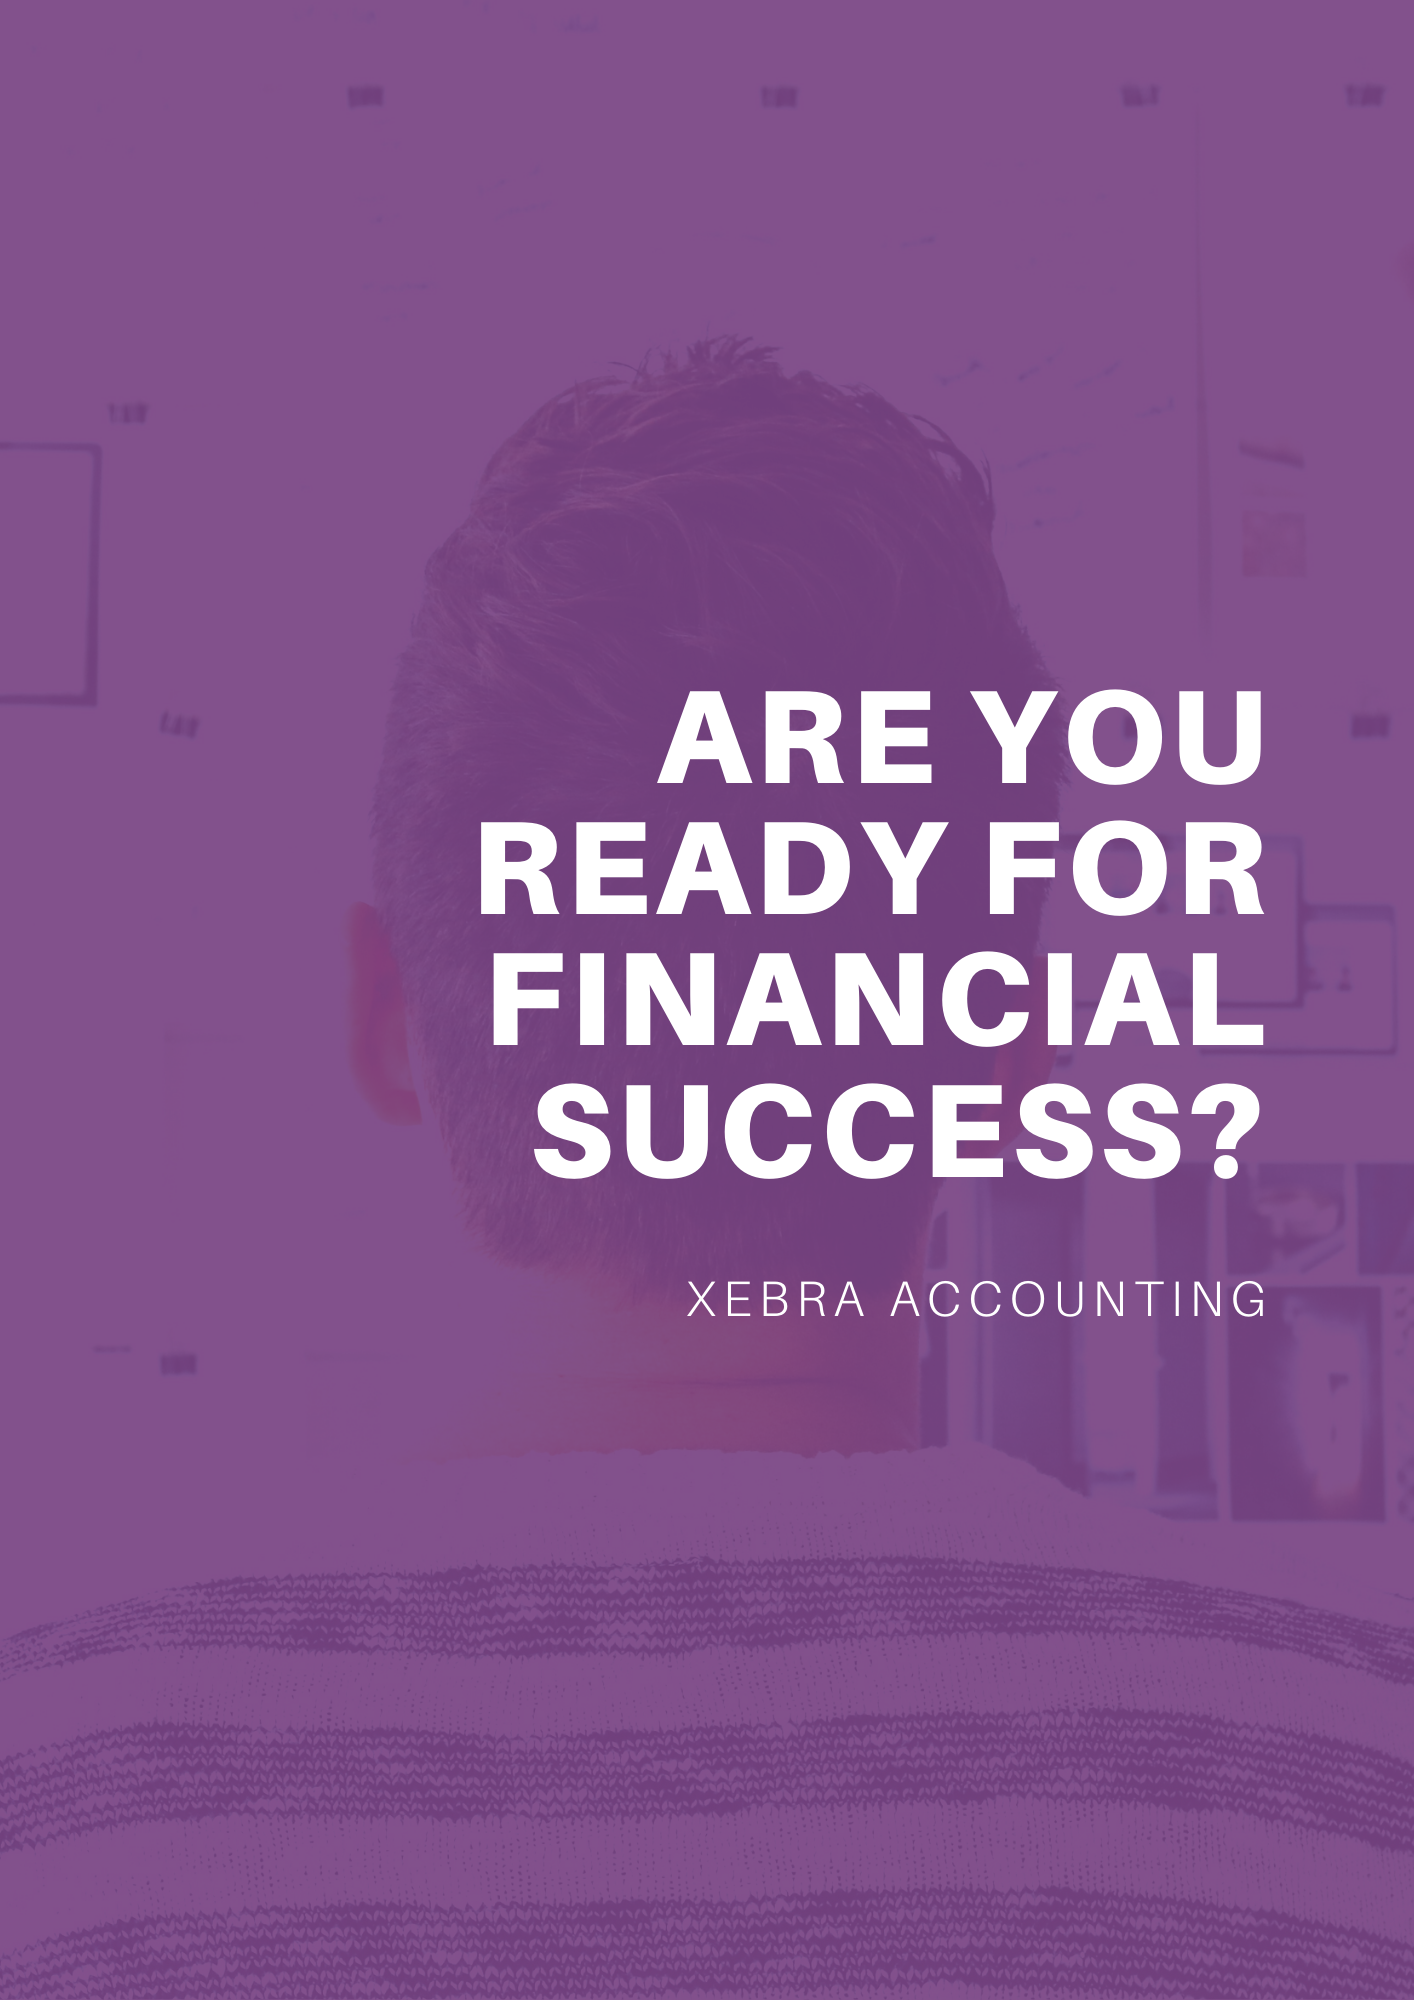 Are you ready for financial success?